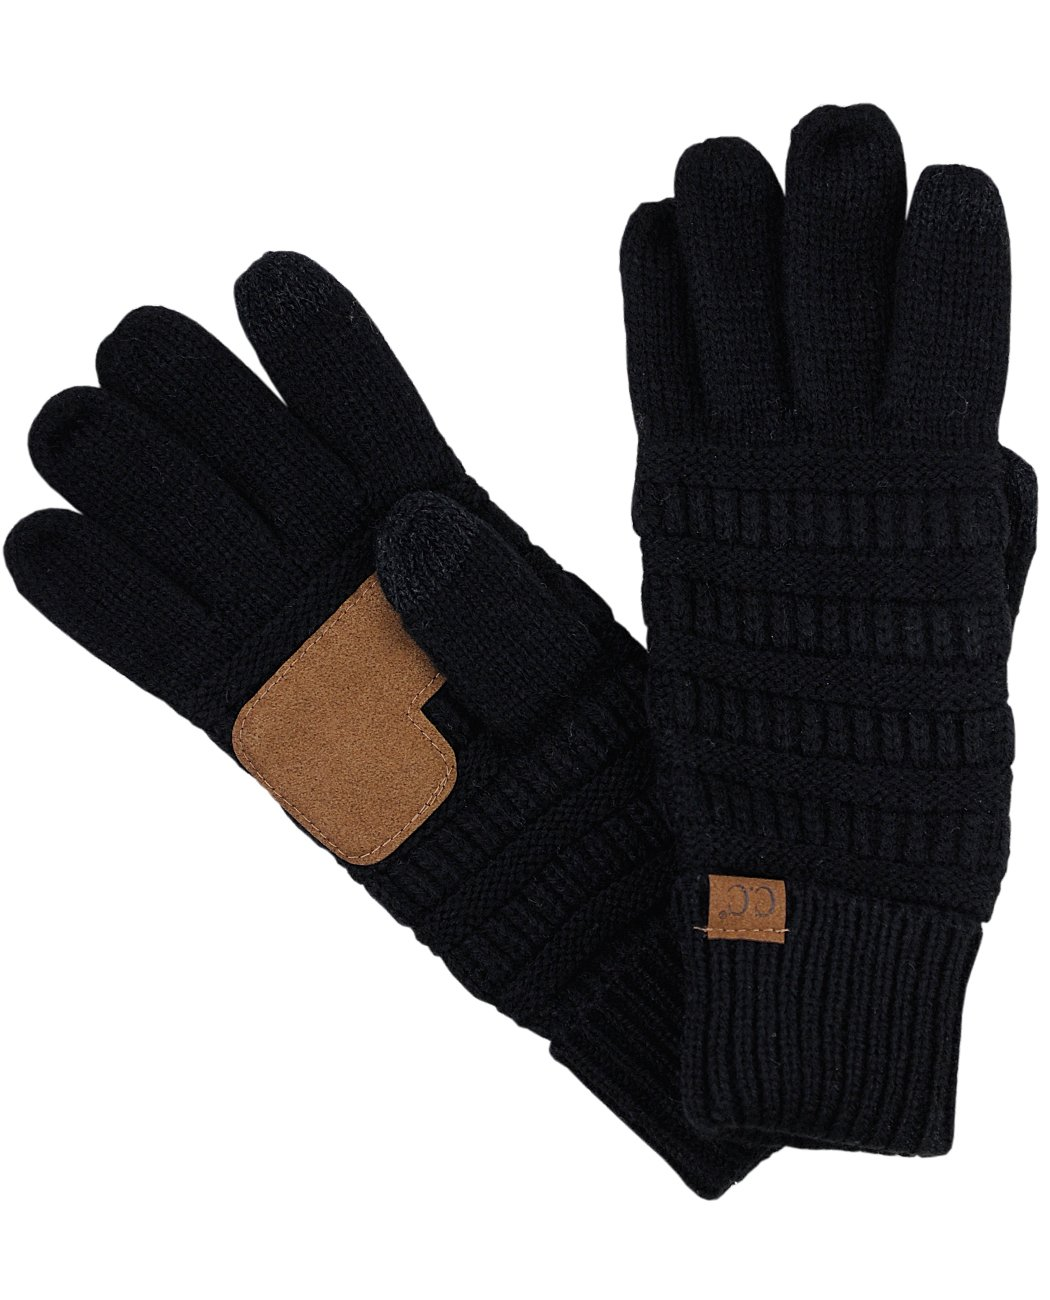 C.C Unisex Cable Knit Winter Warm Anti-Slip Touchscreen Texting Gloves, Black